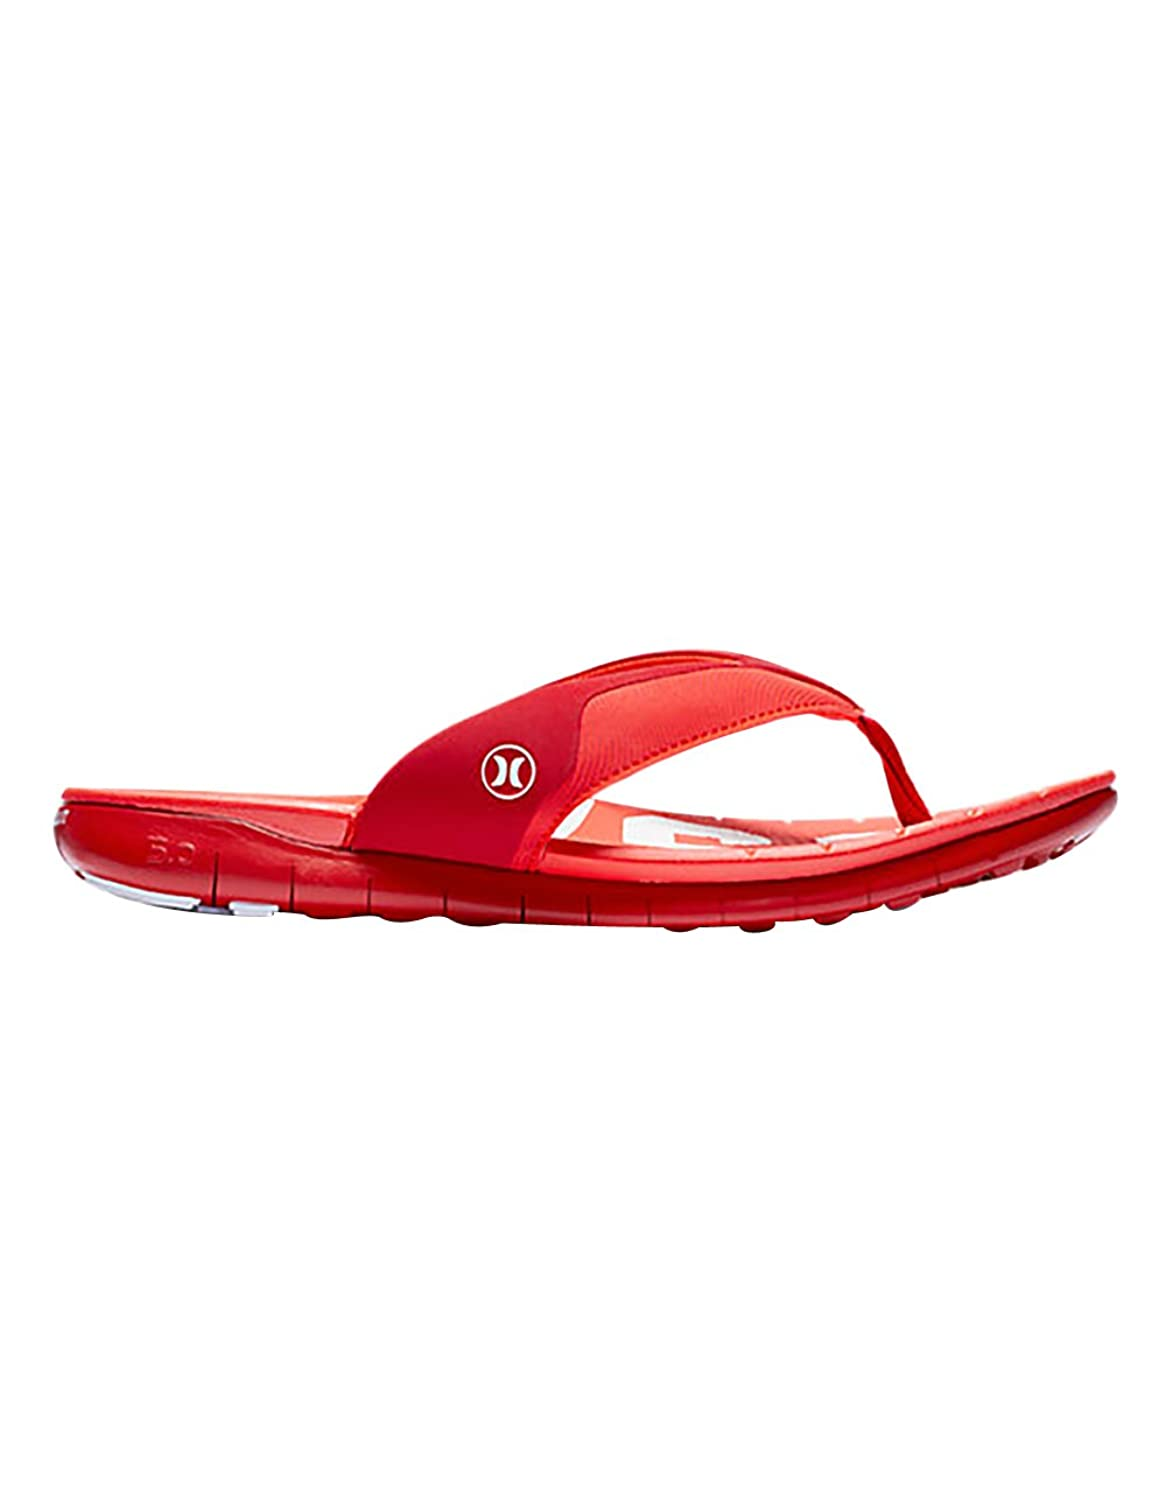 Mens Hurley One & Only Printed Red Sandals Z29880